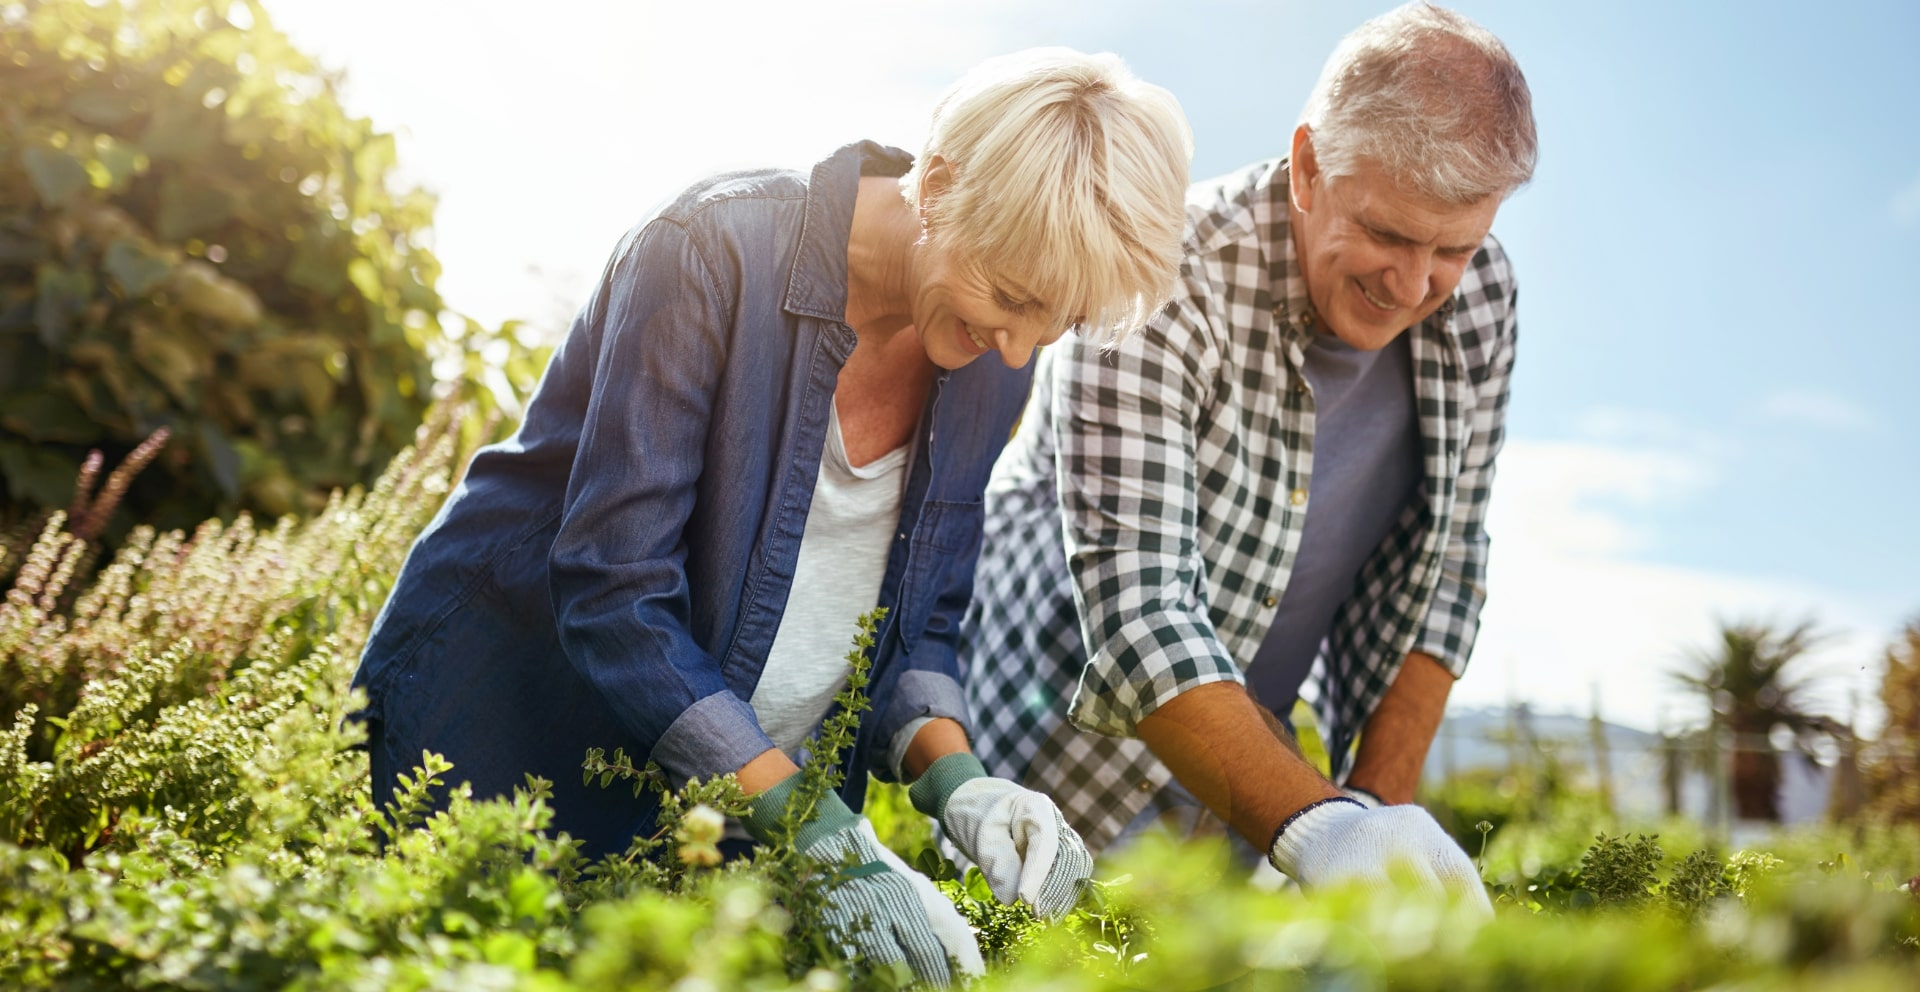 8 Fun & Productive Hobbies to Cultivate After Retirement